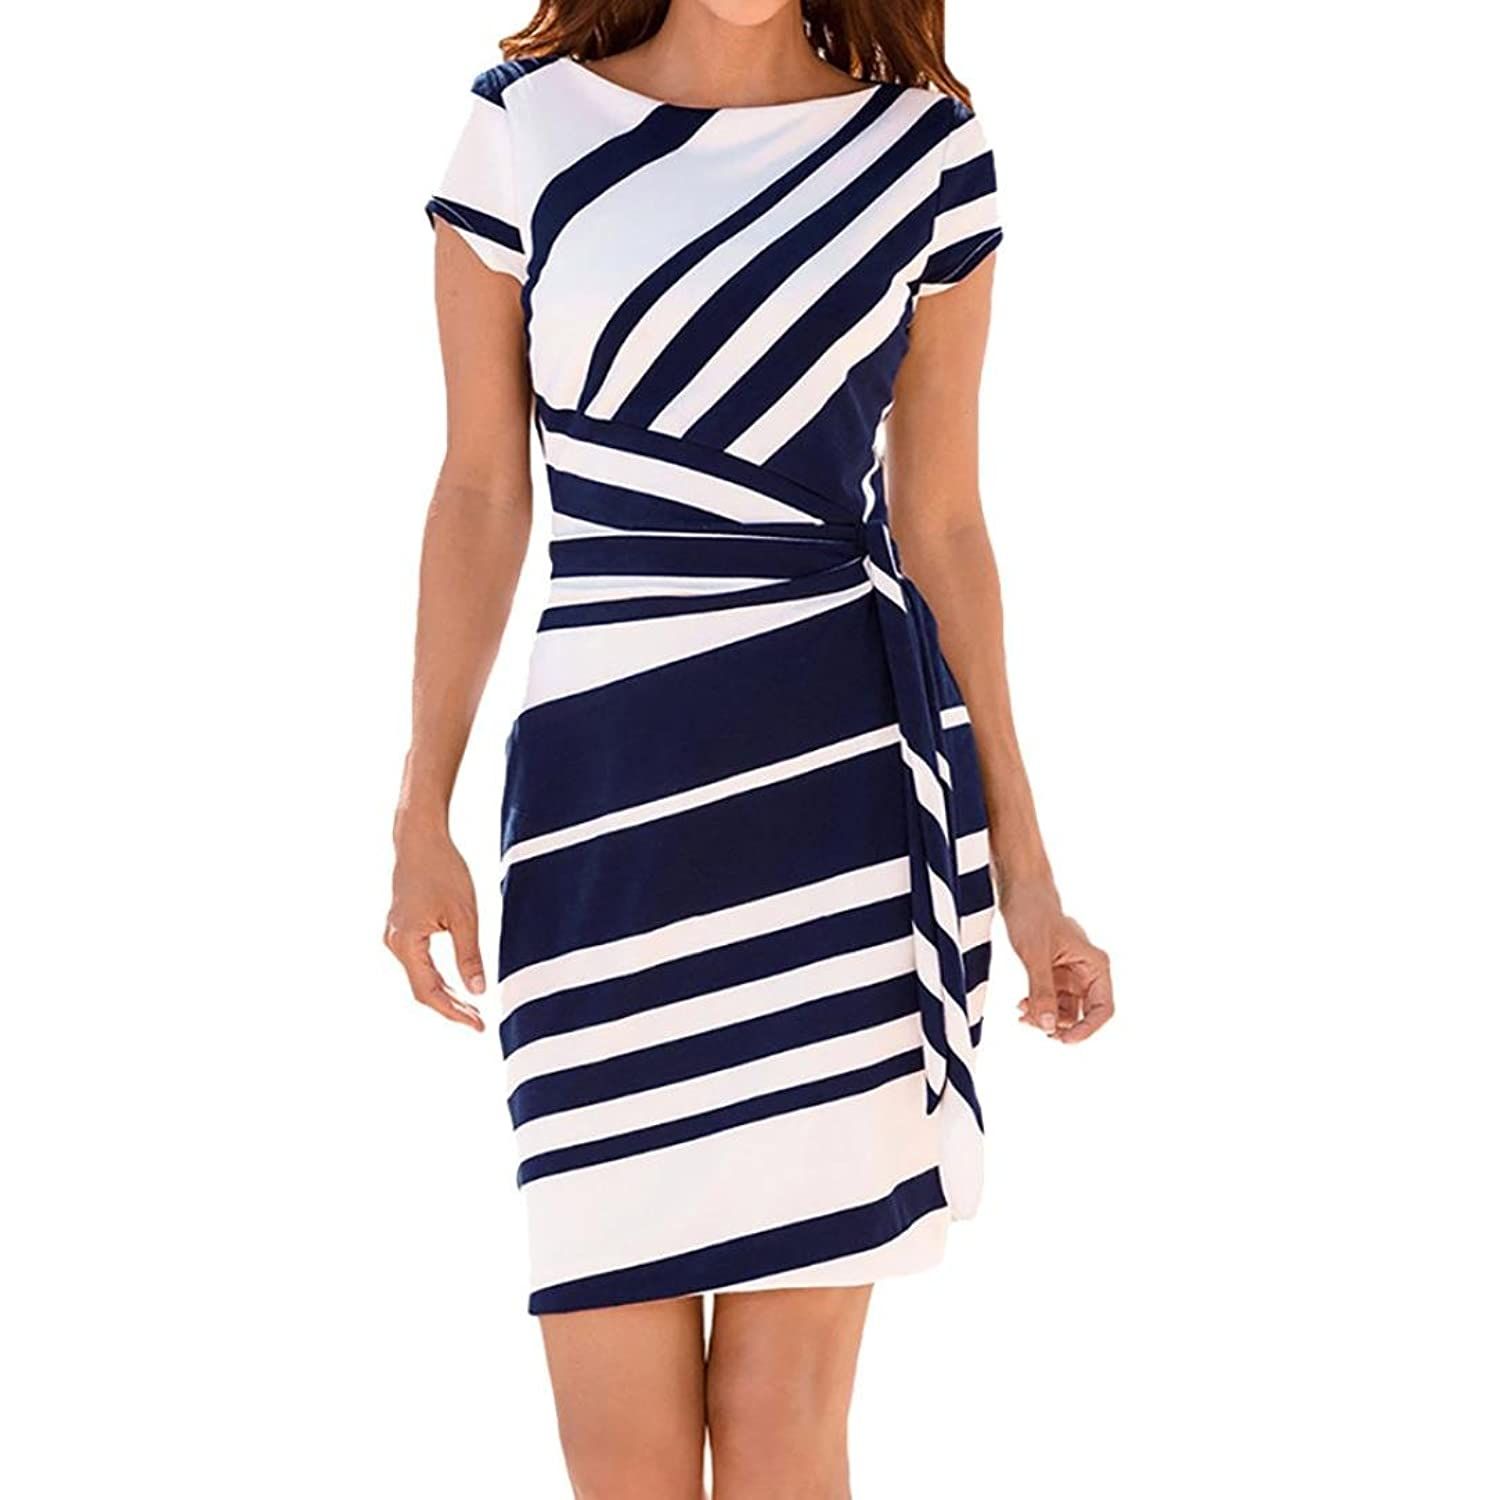 MRULIC Damen Working Dresses Pencil Gestreiftes Party-Kleid ...